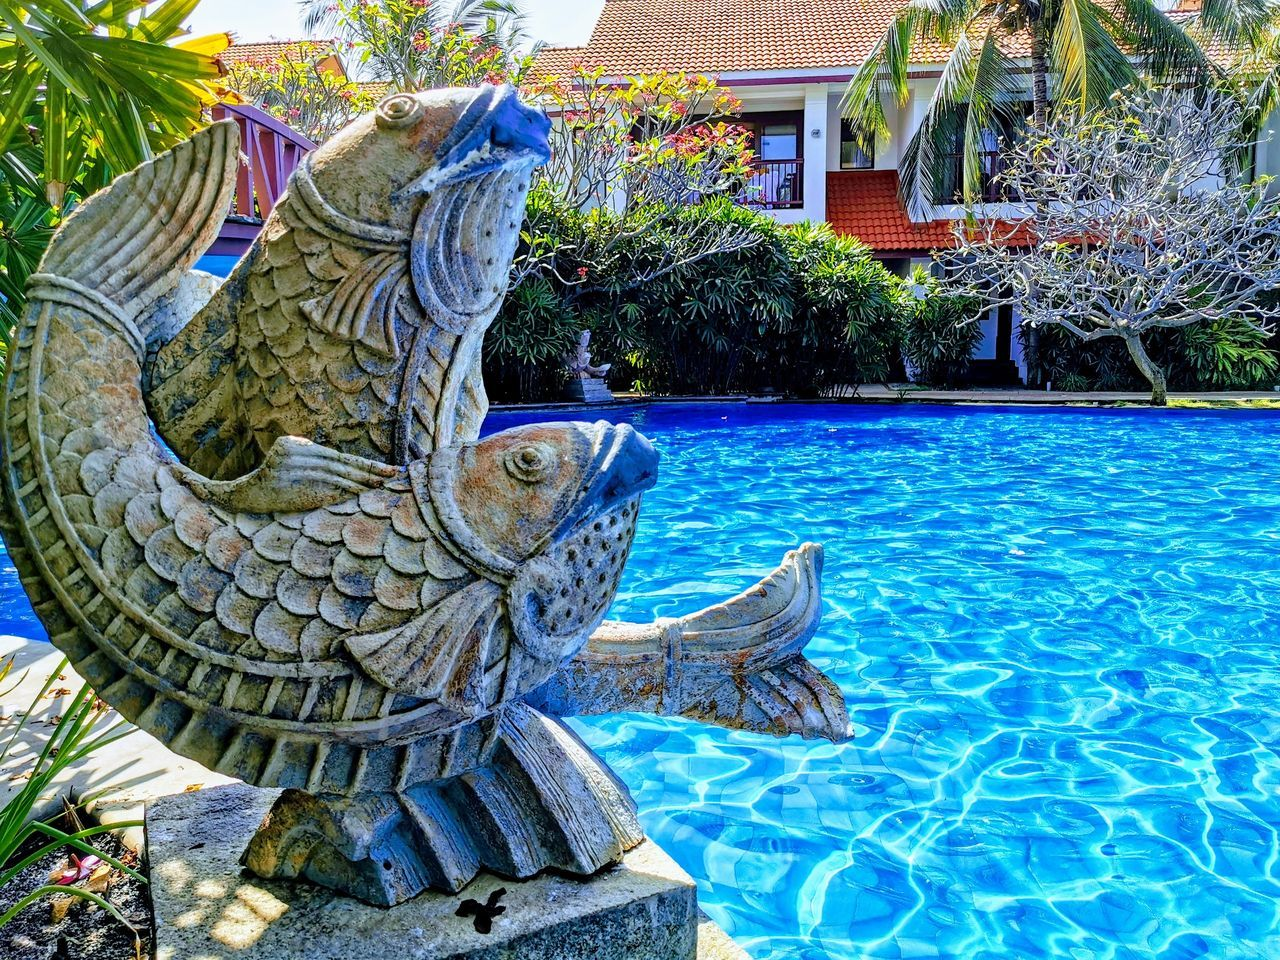 VIEW OF AN ANIMAL BY SWIMMING POOL